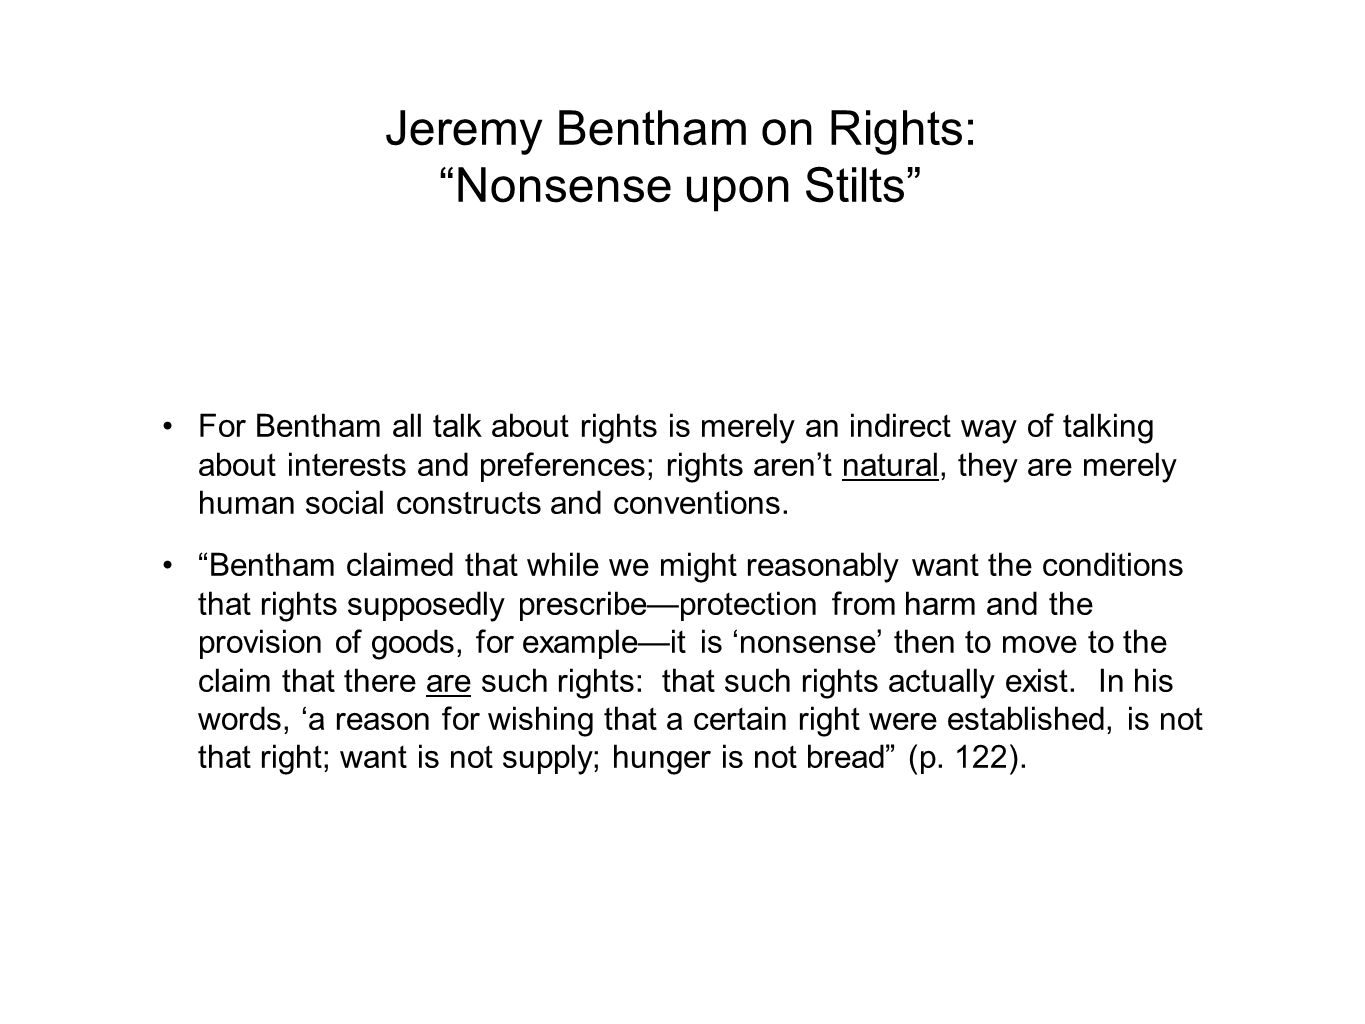 Jeremy Bentham on Rights: Nonsense upon Stilts For Bentham all talk about rights is merely an indirect way of talking about interests and preferences; rights aren't natural, they are merely human social constructs and conventions.